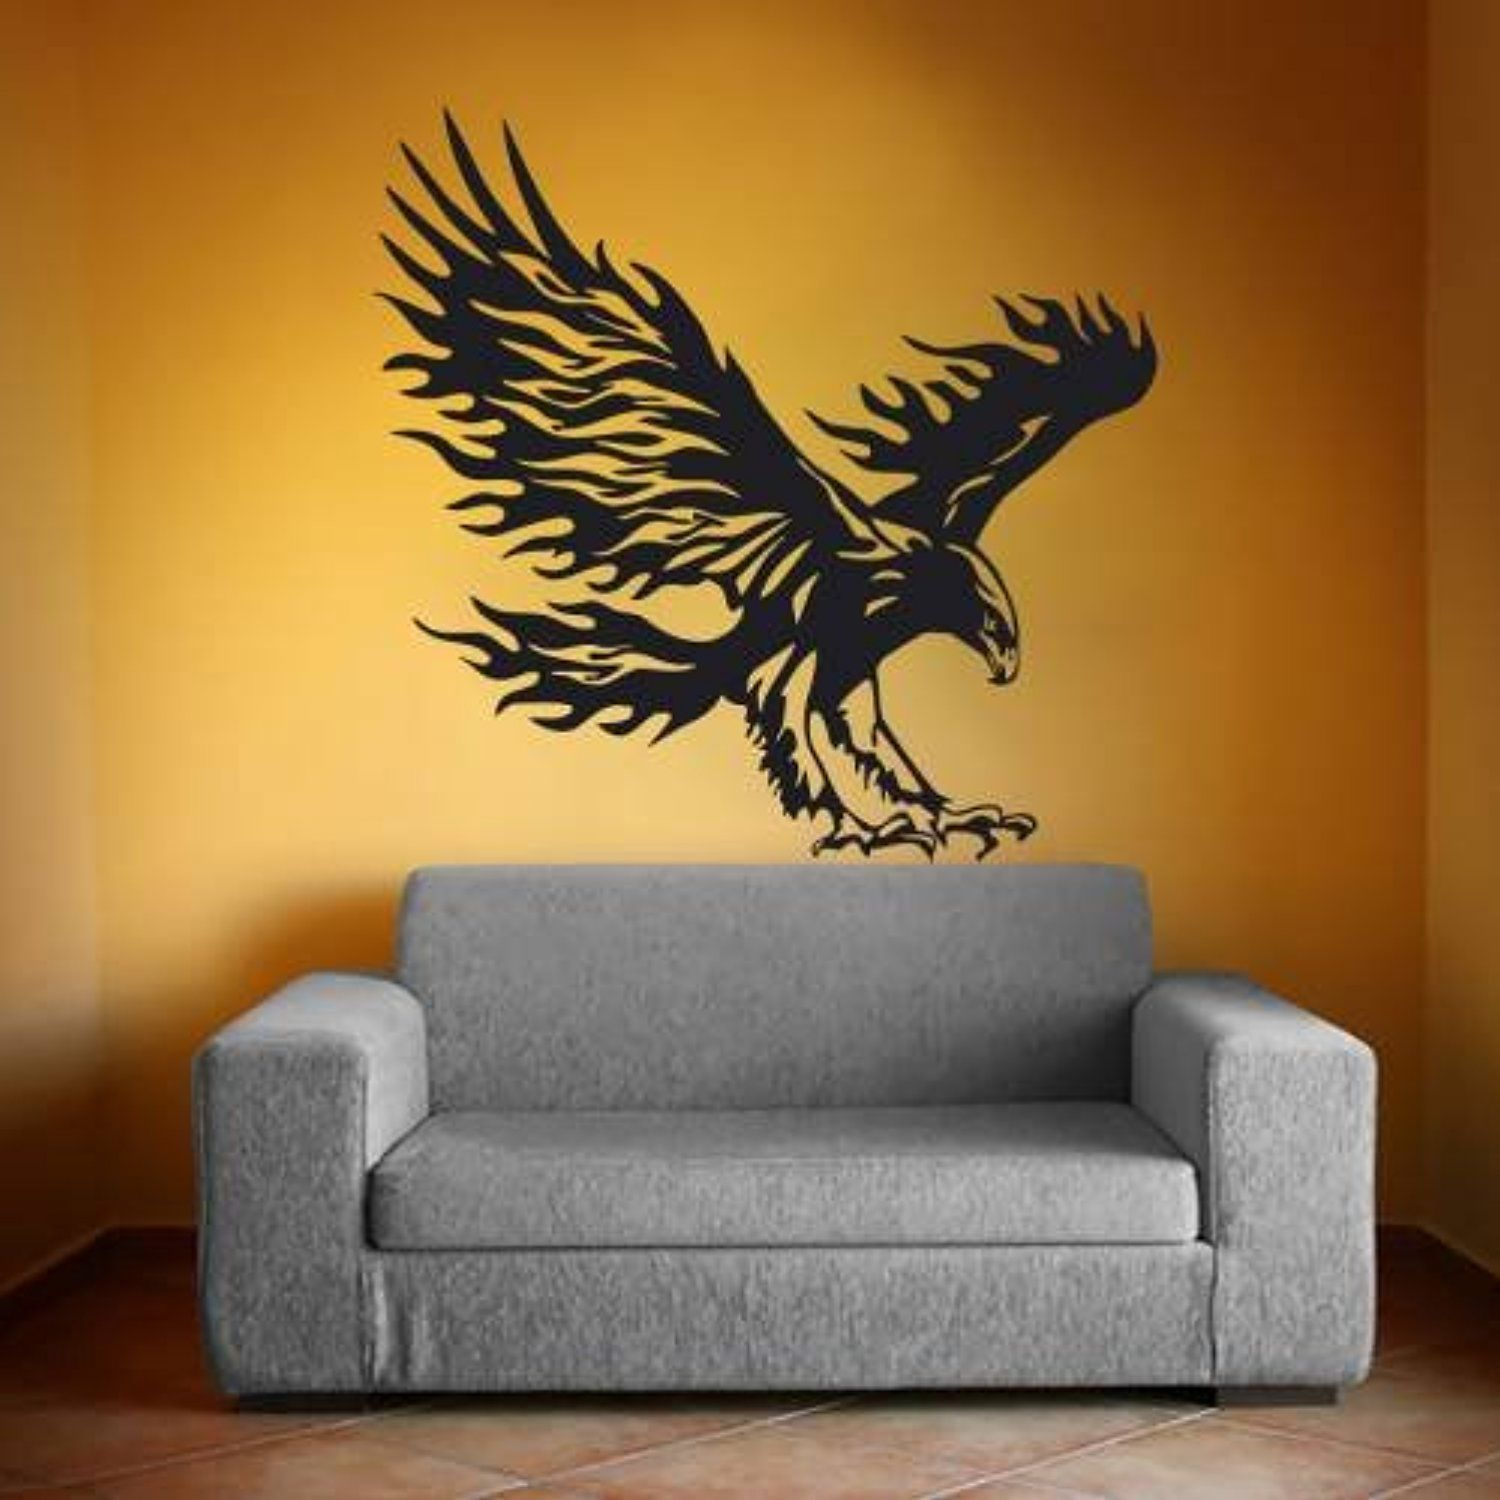 Eagle Wall Decor for Home Room Decals Sticker Vinyl ...